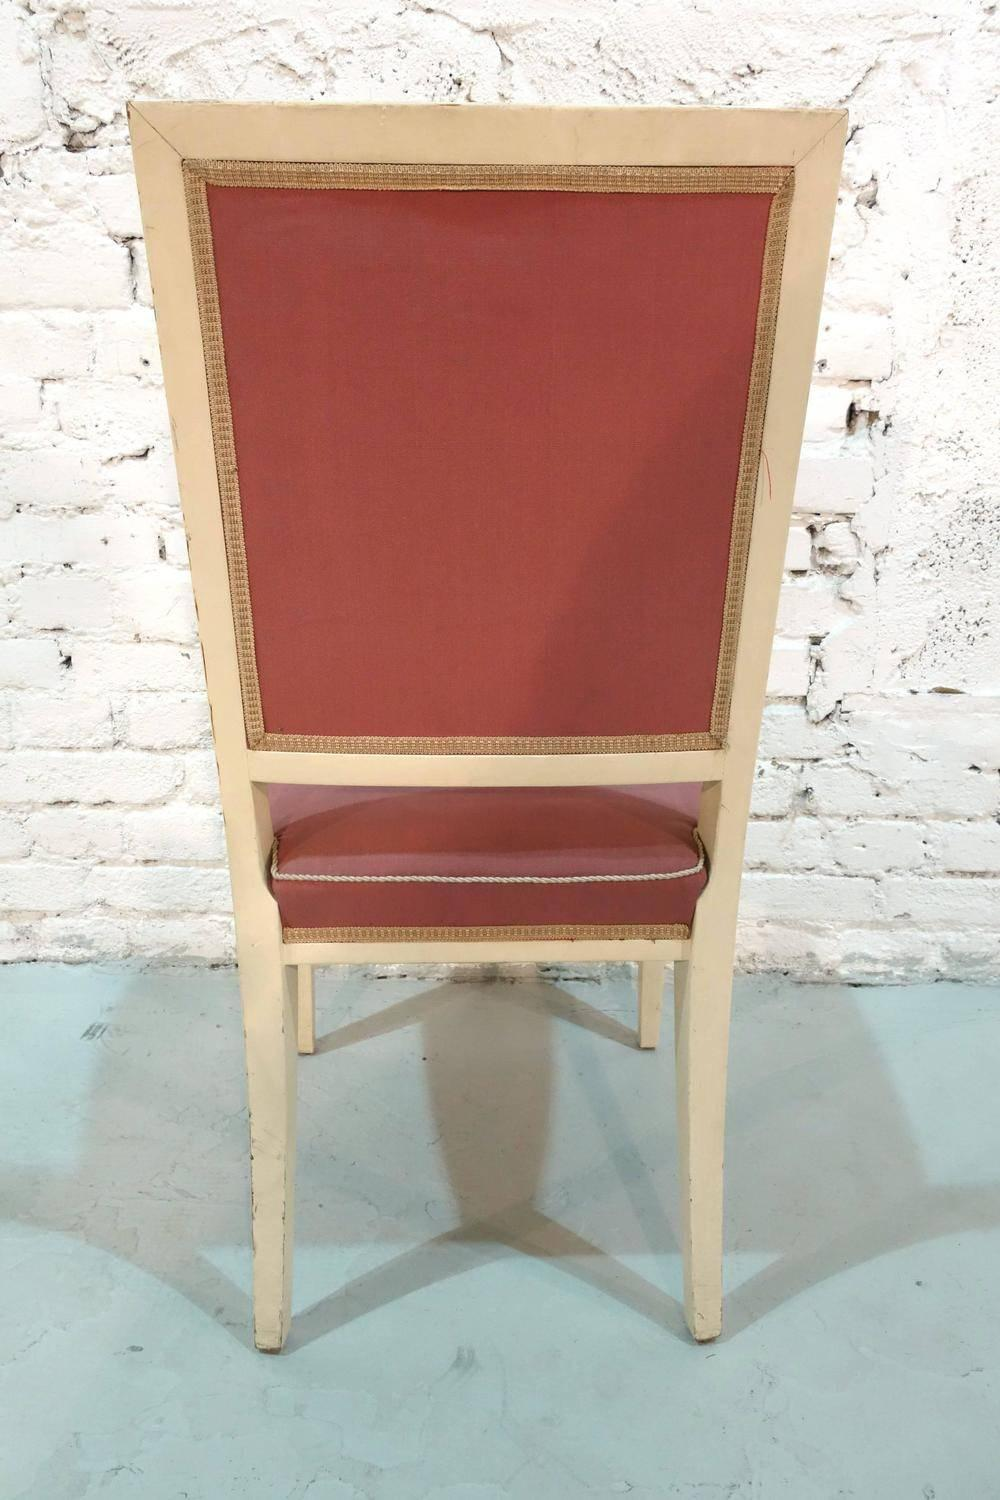 Bellevue palace chairs by carl heinz schwennicke for sale for Furniture in bellevue